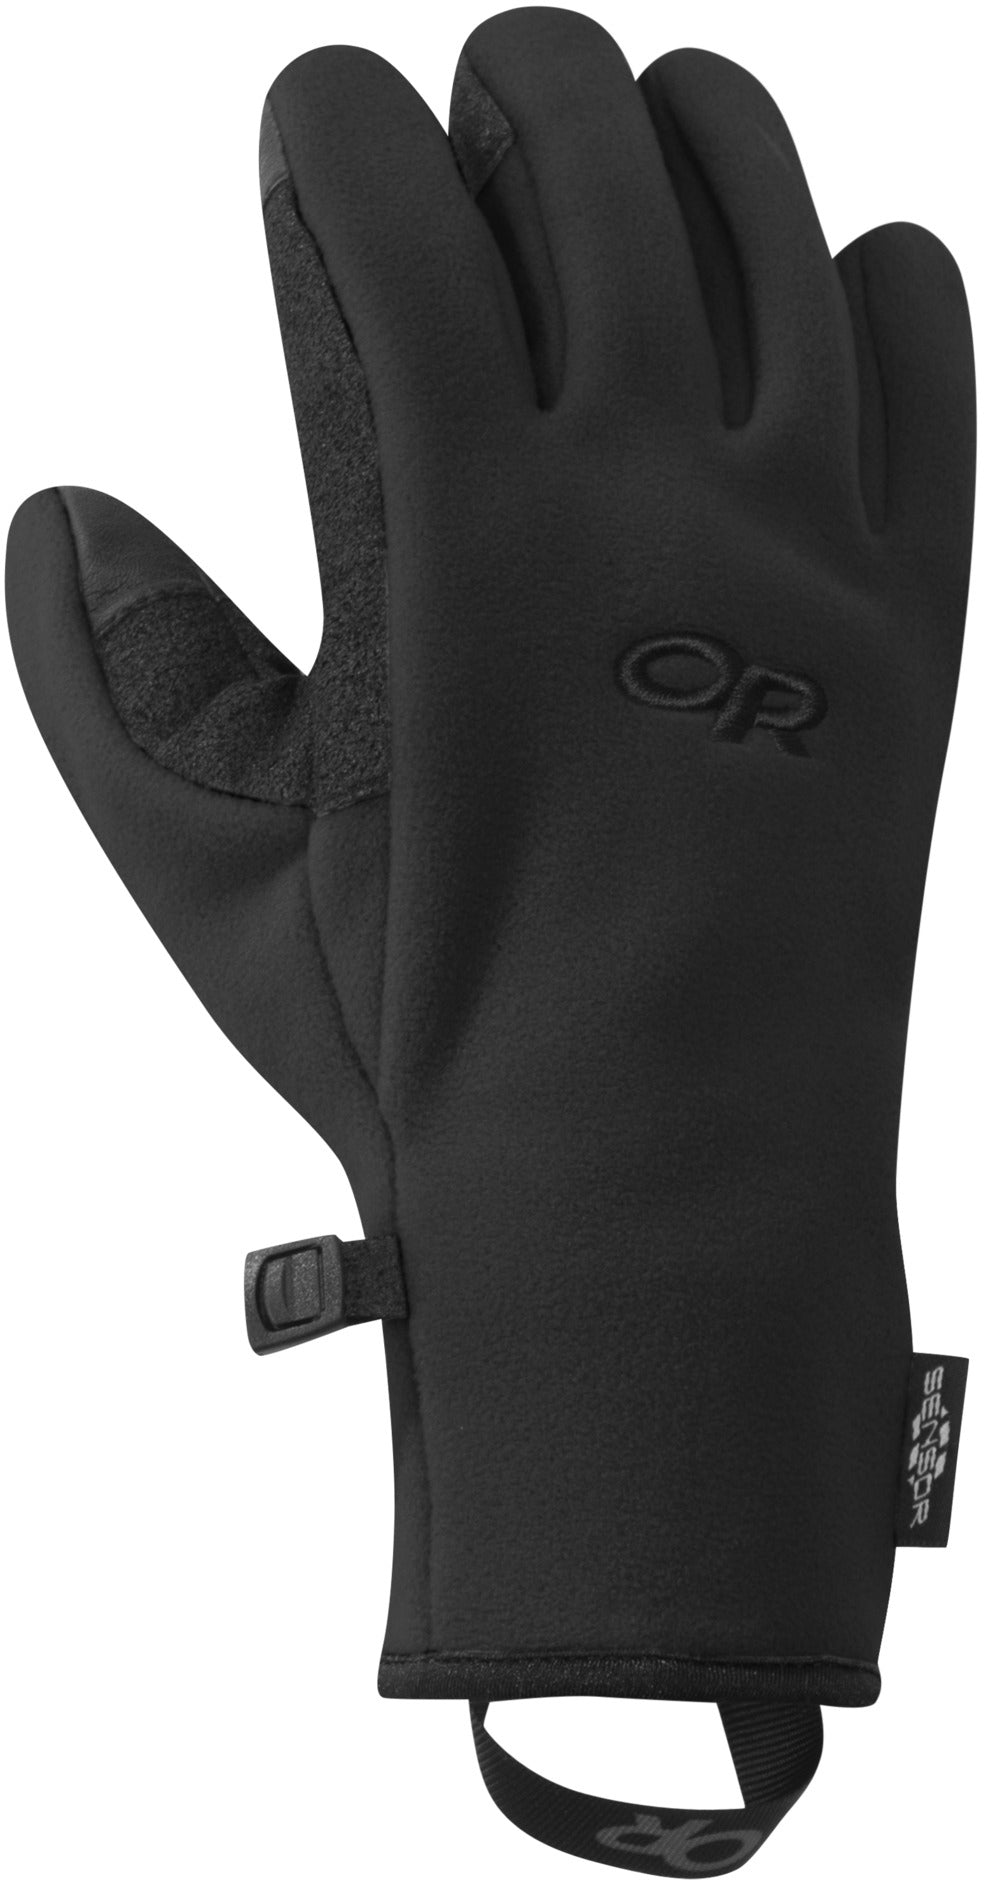 Outdoor Research - Women's Gripper Sensor - Black